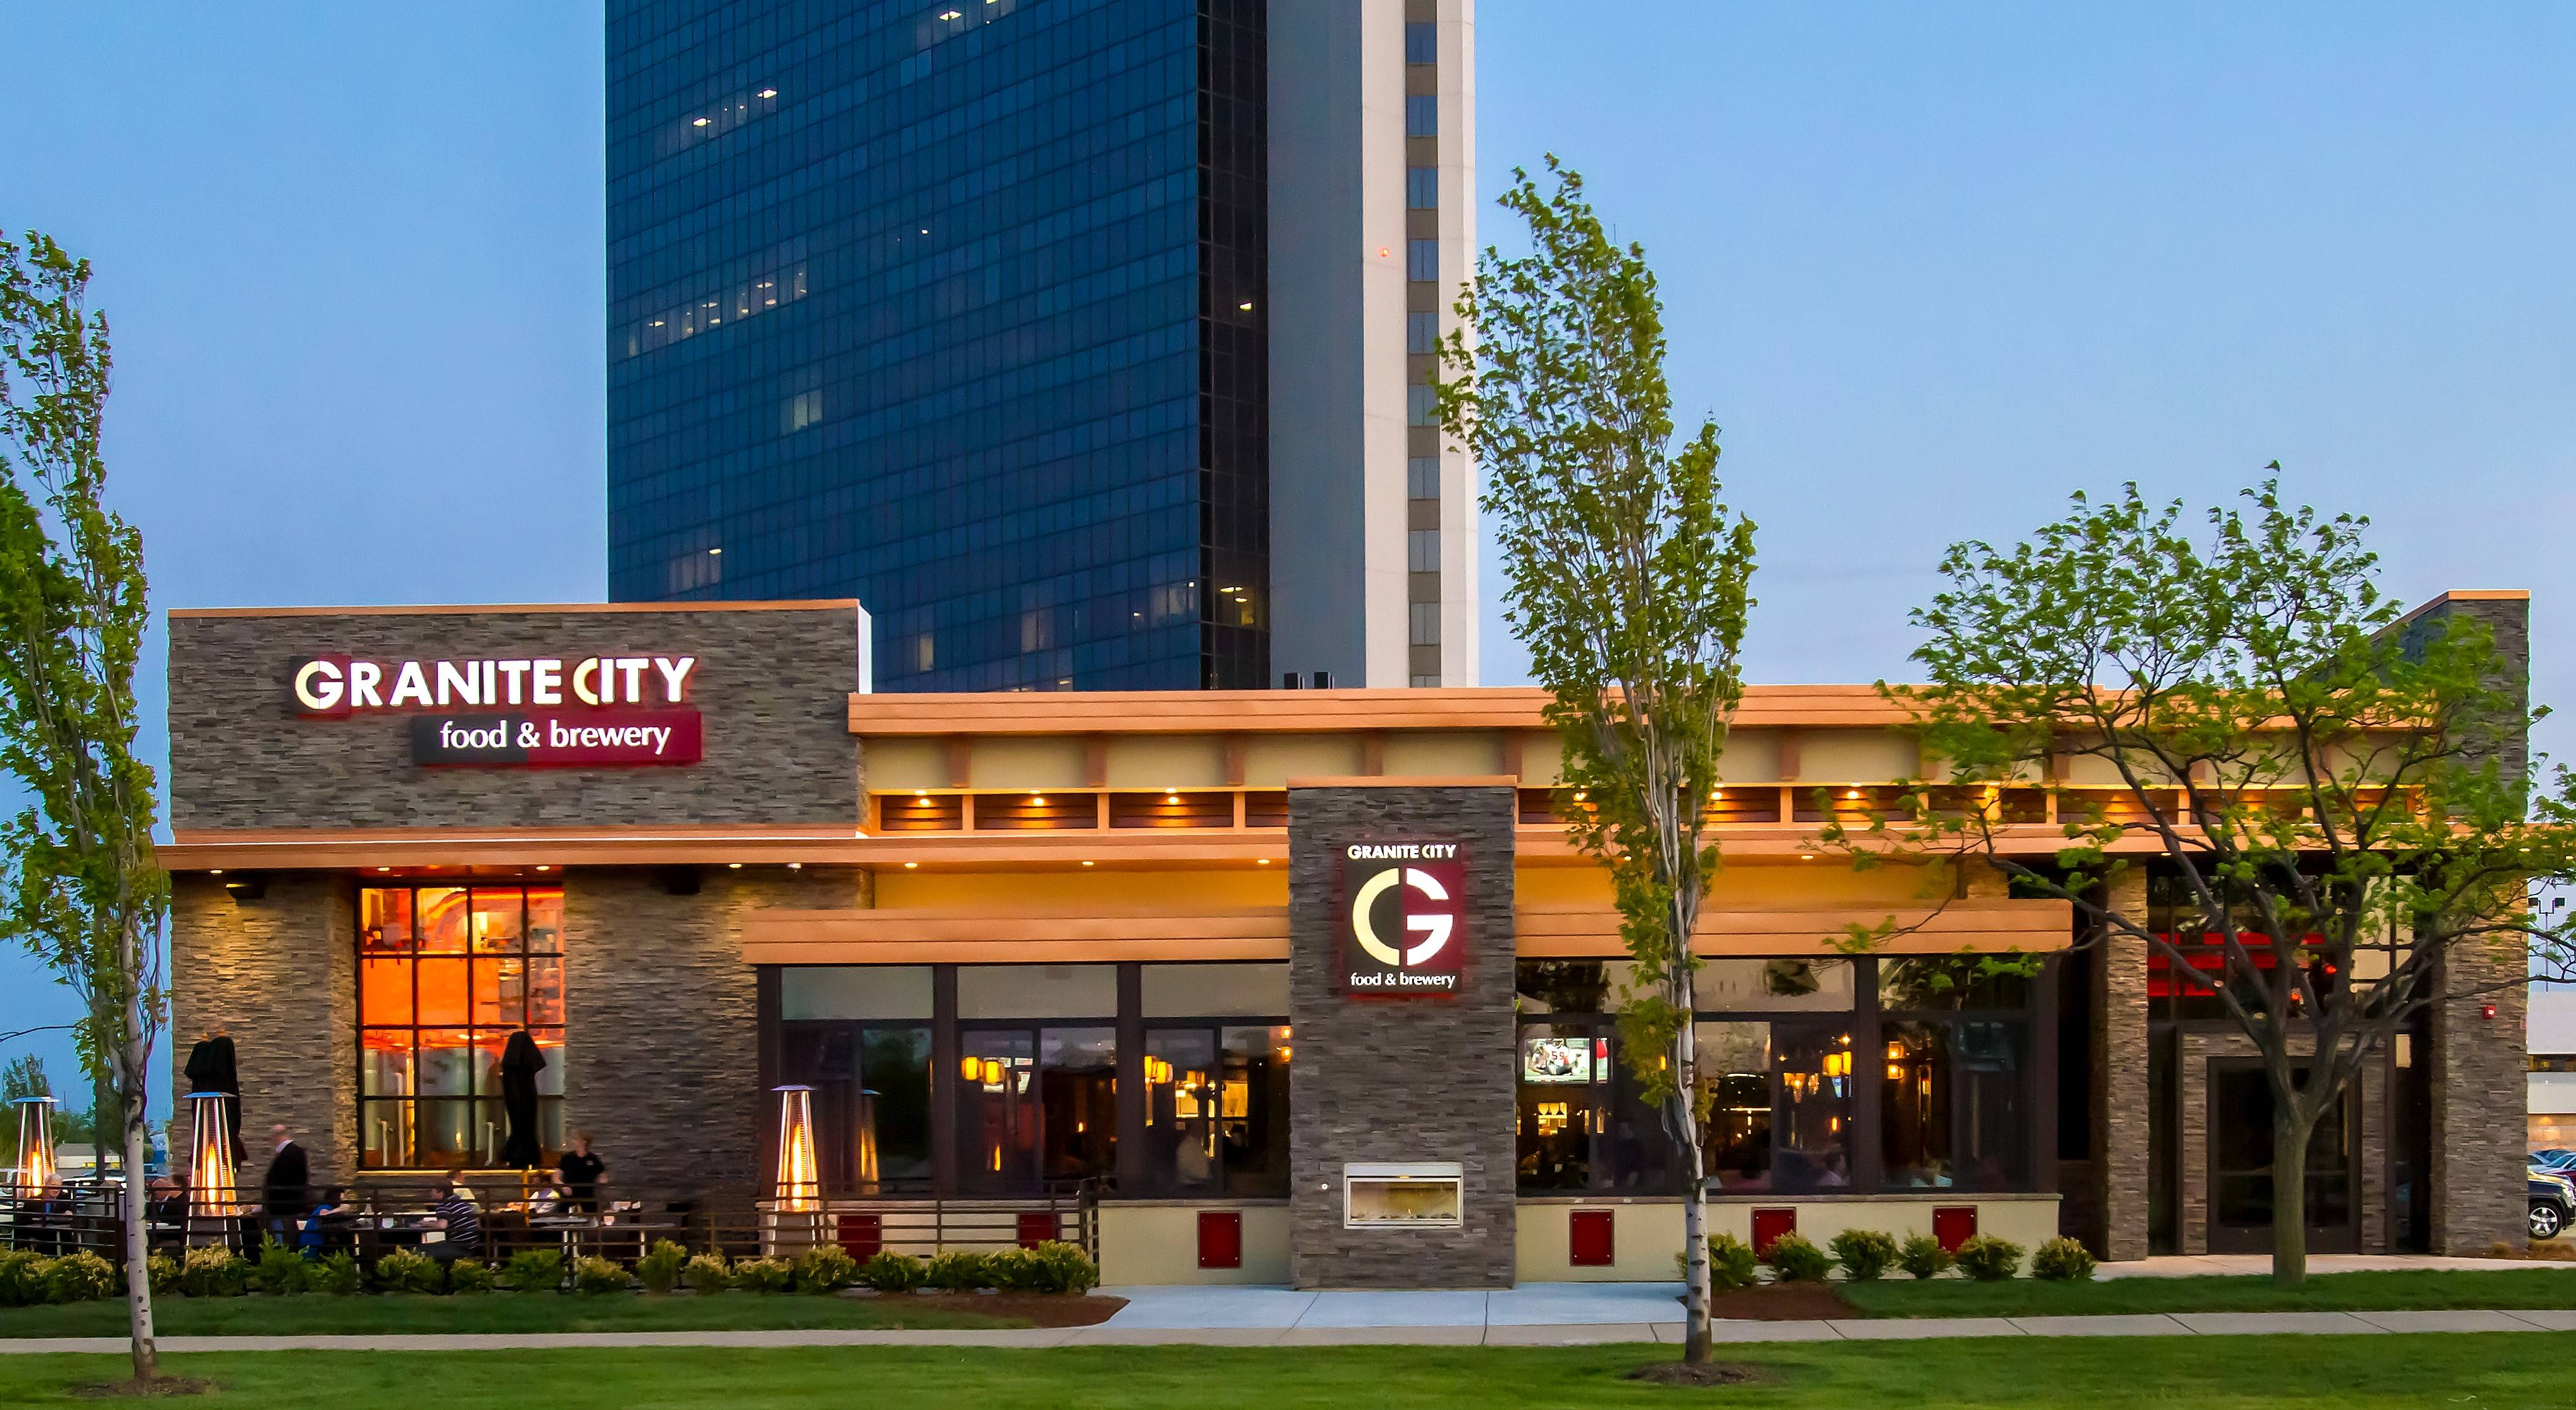 Granite City Food & Brewery will be the first of four restaurants set to open in north Naperville as part of the Freedom Plaza development, which will be anchored by an Embassy Suites hotel with a large banquet and conference facility.